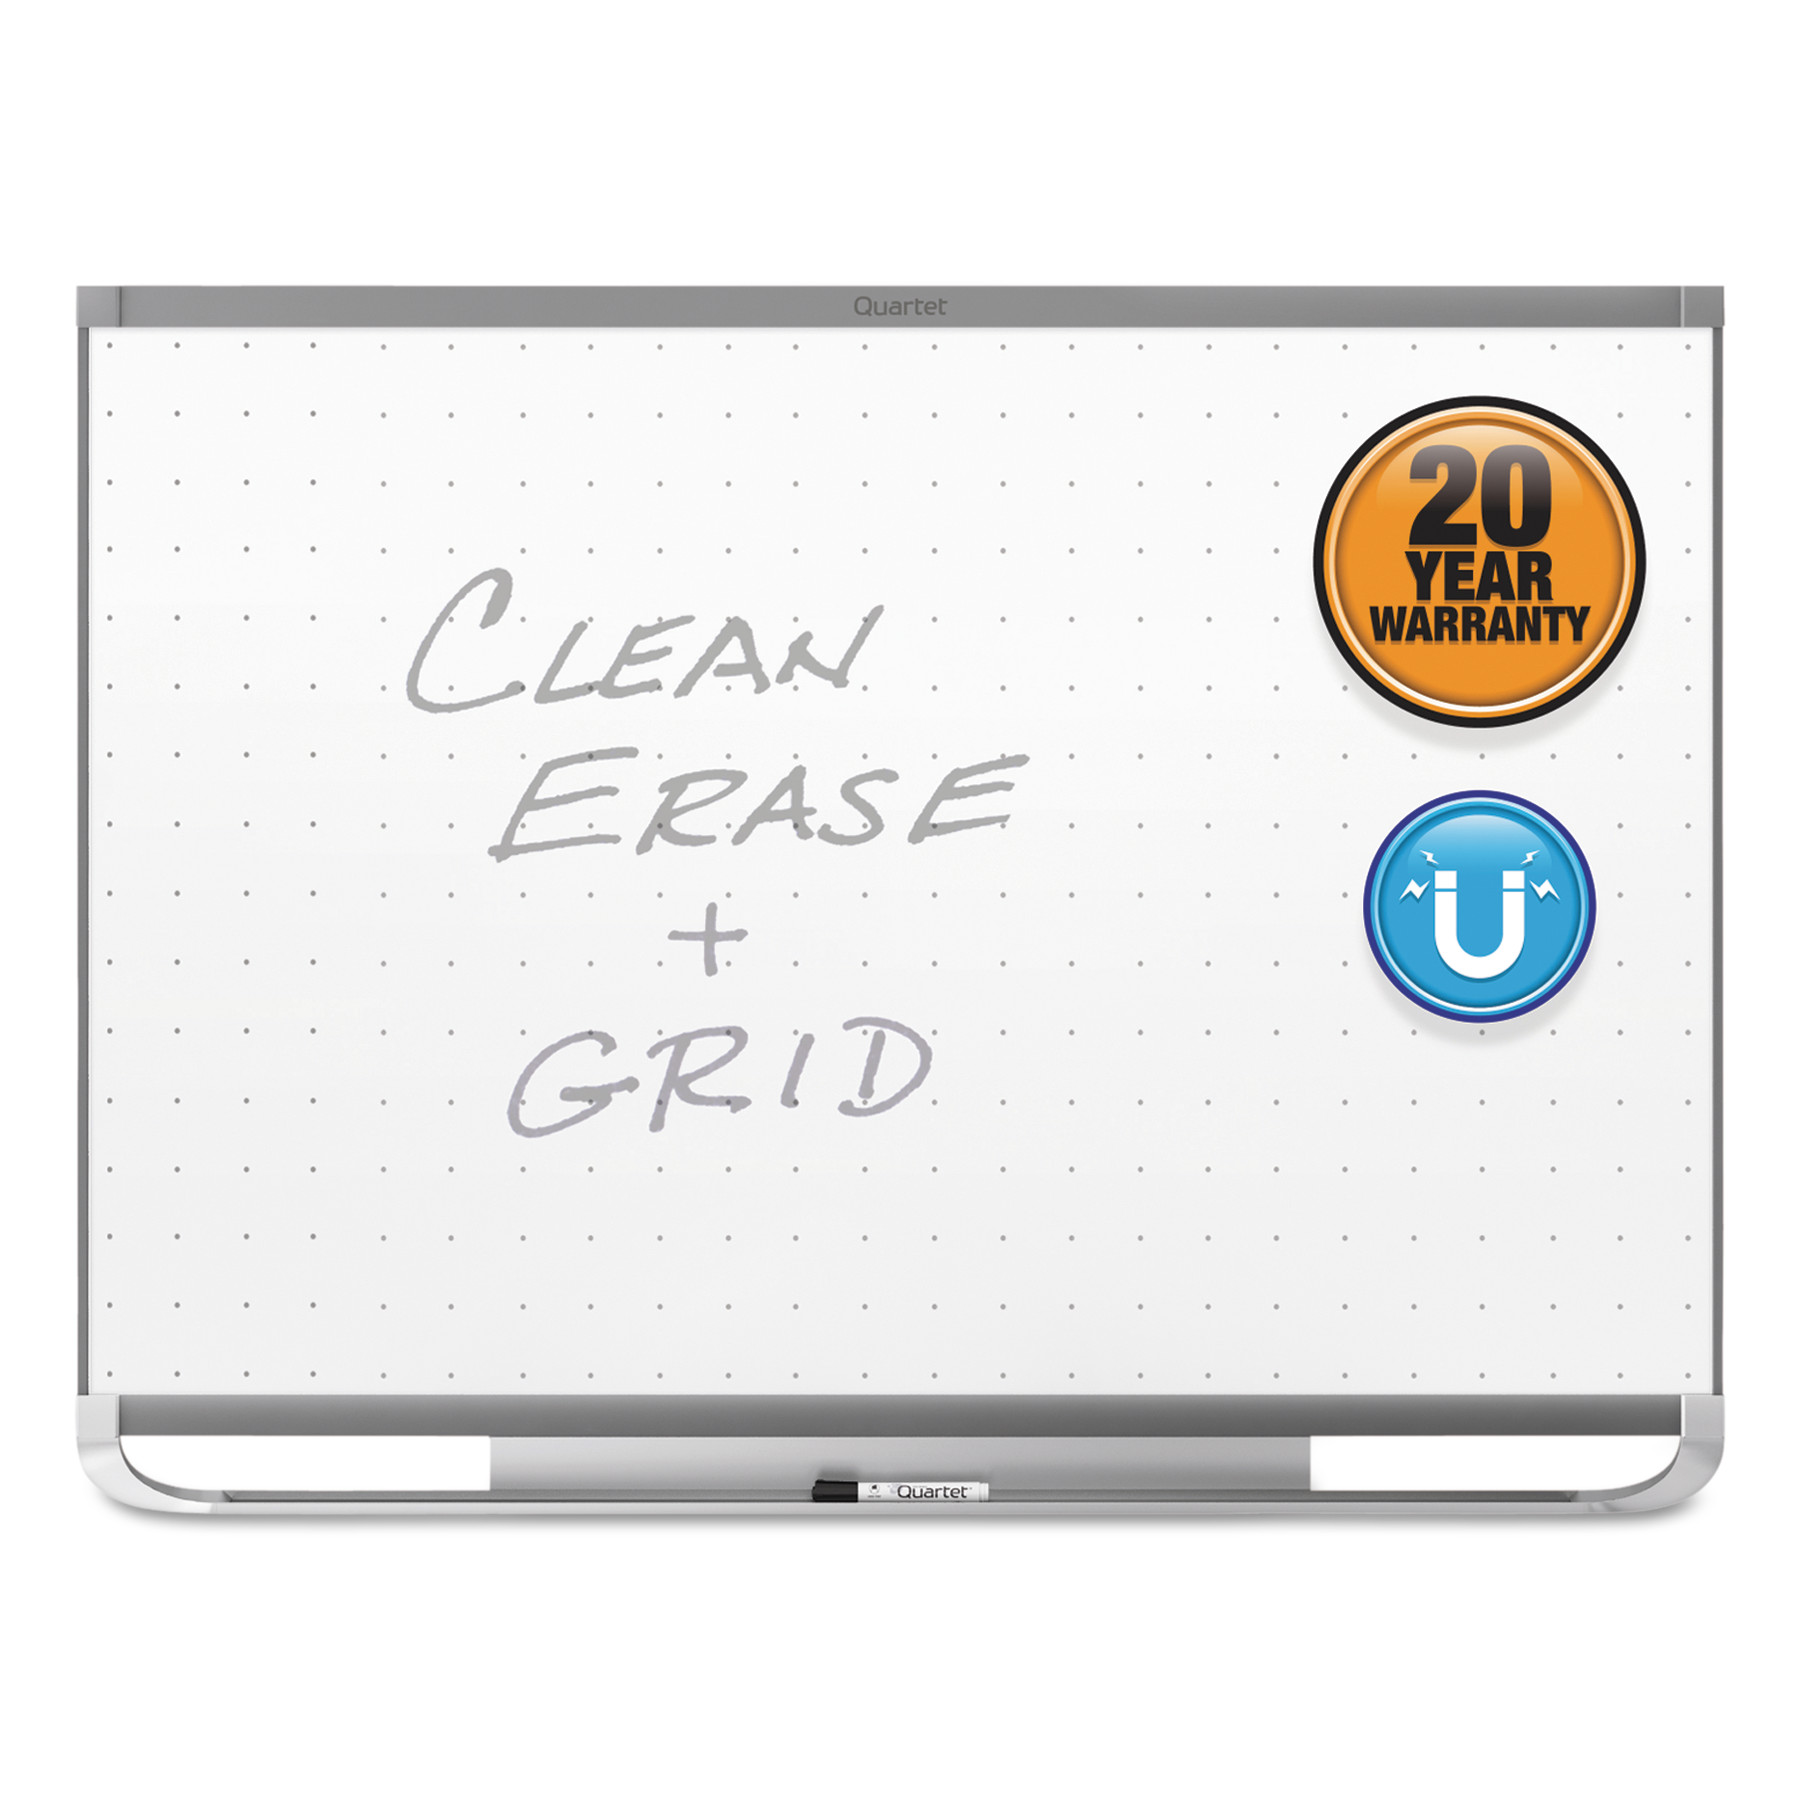 Quartet Prestige 2 Magnetic Total Erase Whiteboard, 96 x 48, Graphite Frame by QUARTET MFG.